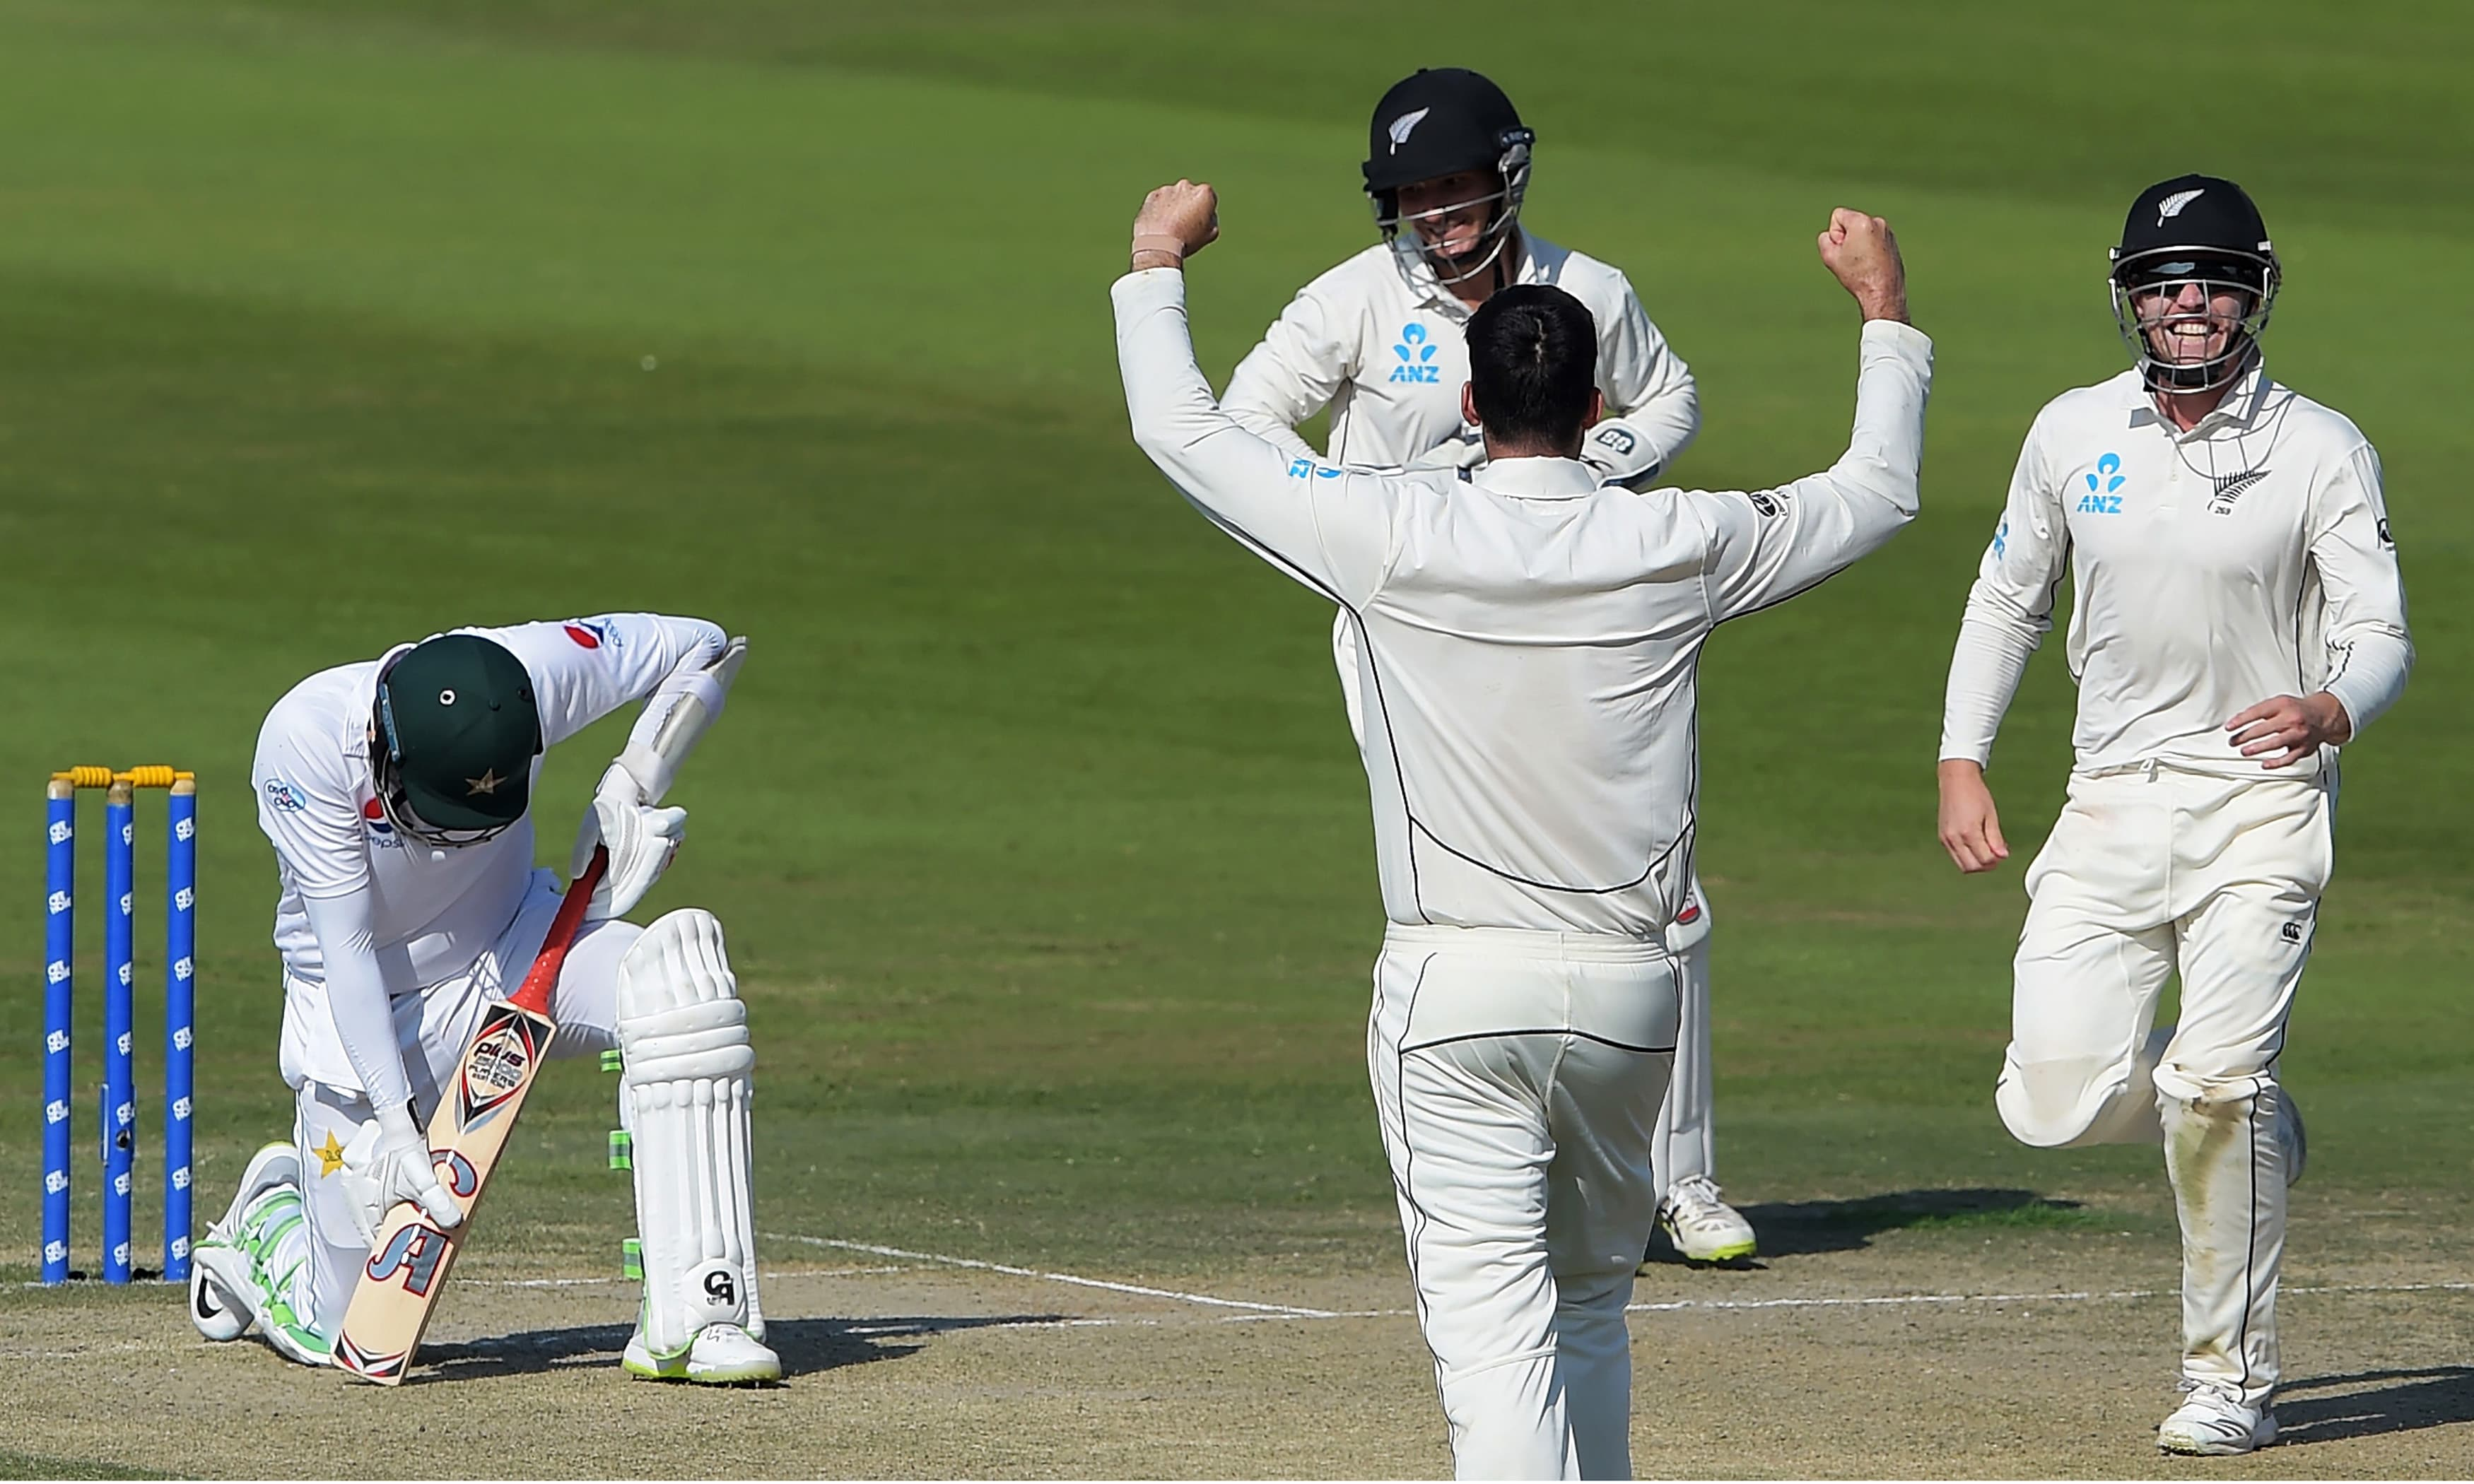 New Zealand cricketers react after the dismissal of Azhar Ali during the third day of the final Test match. —AFP